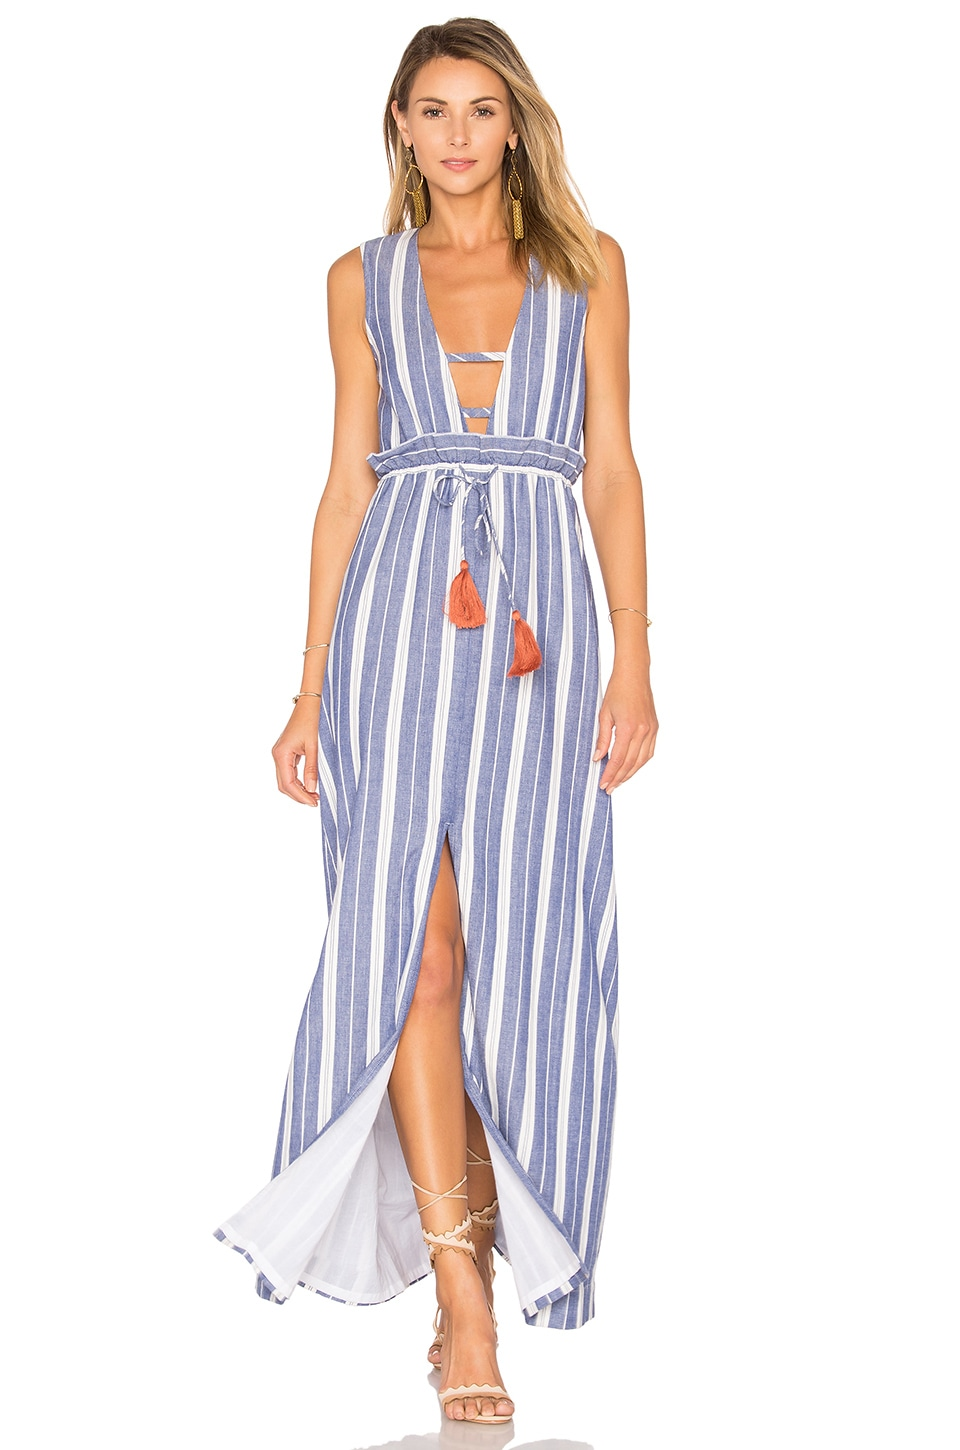 Tularosa Essie Maxi Dress in Indigo Stripe